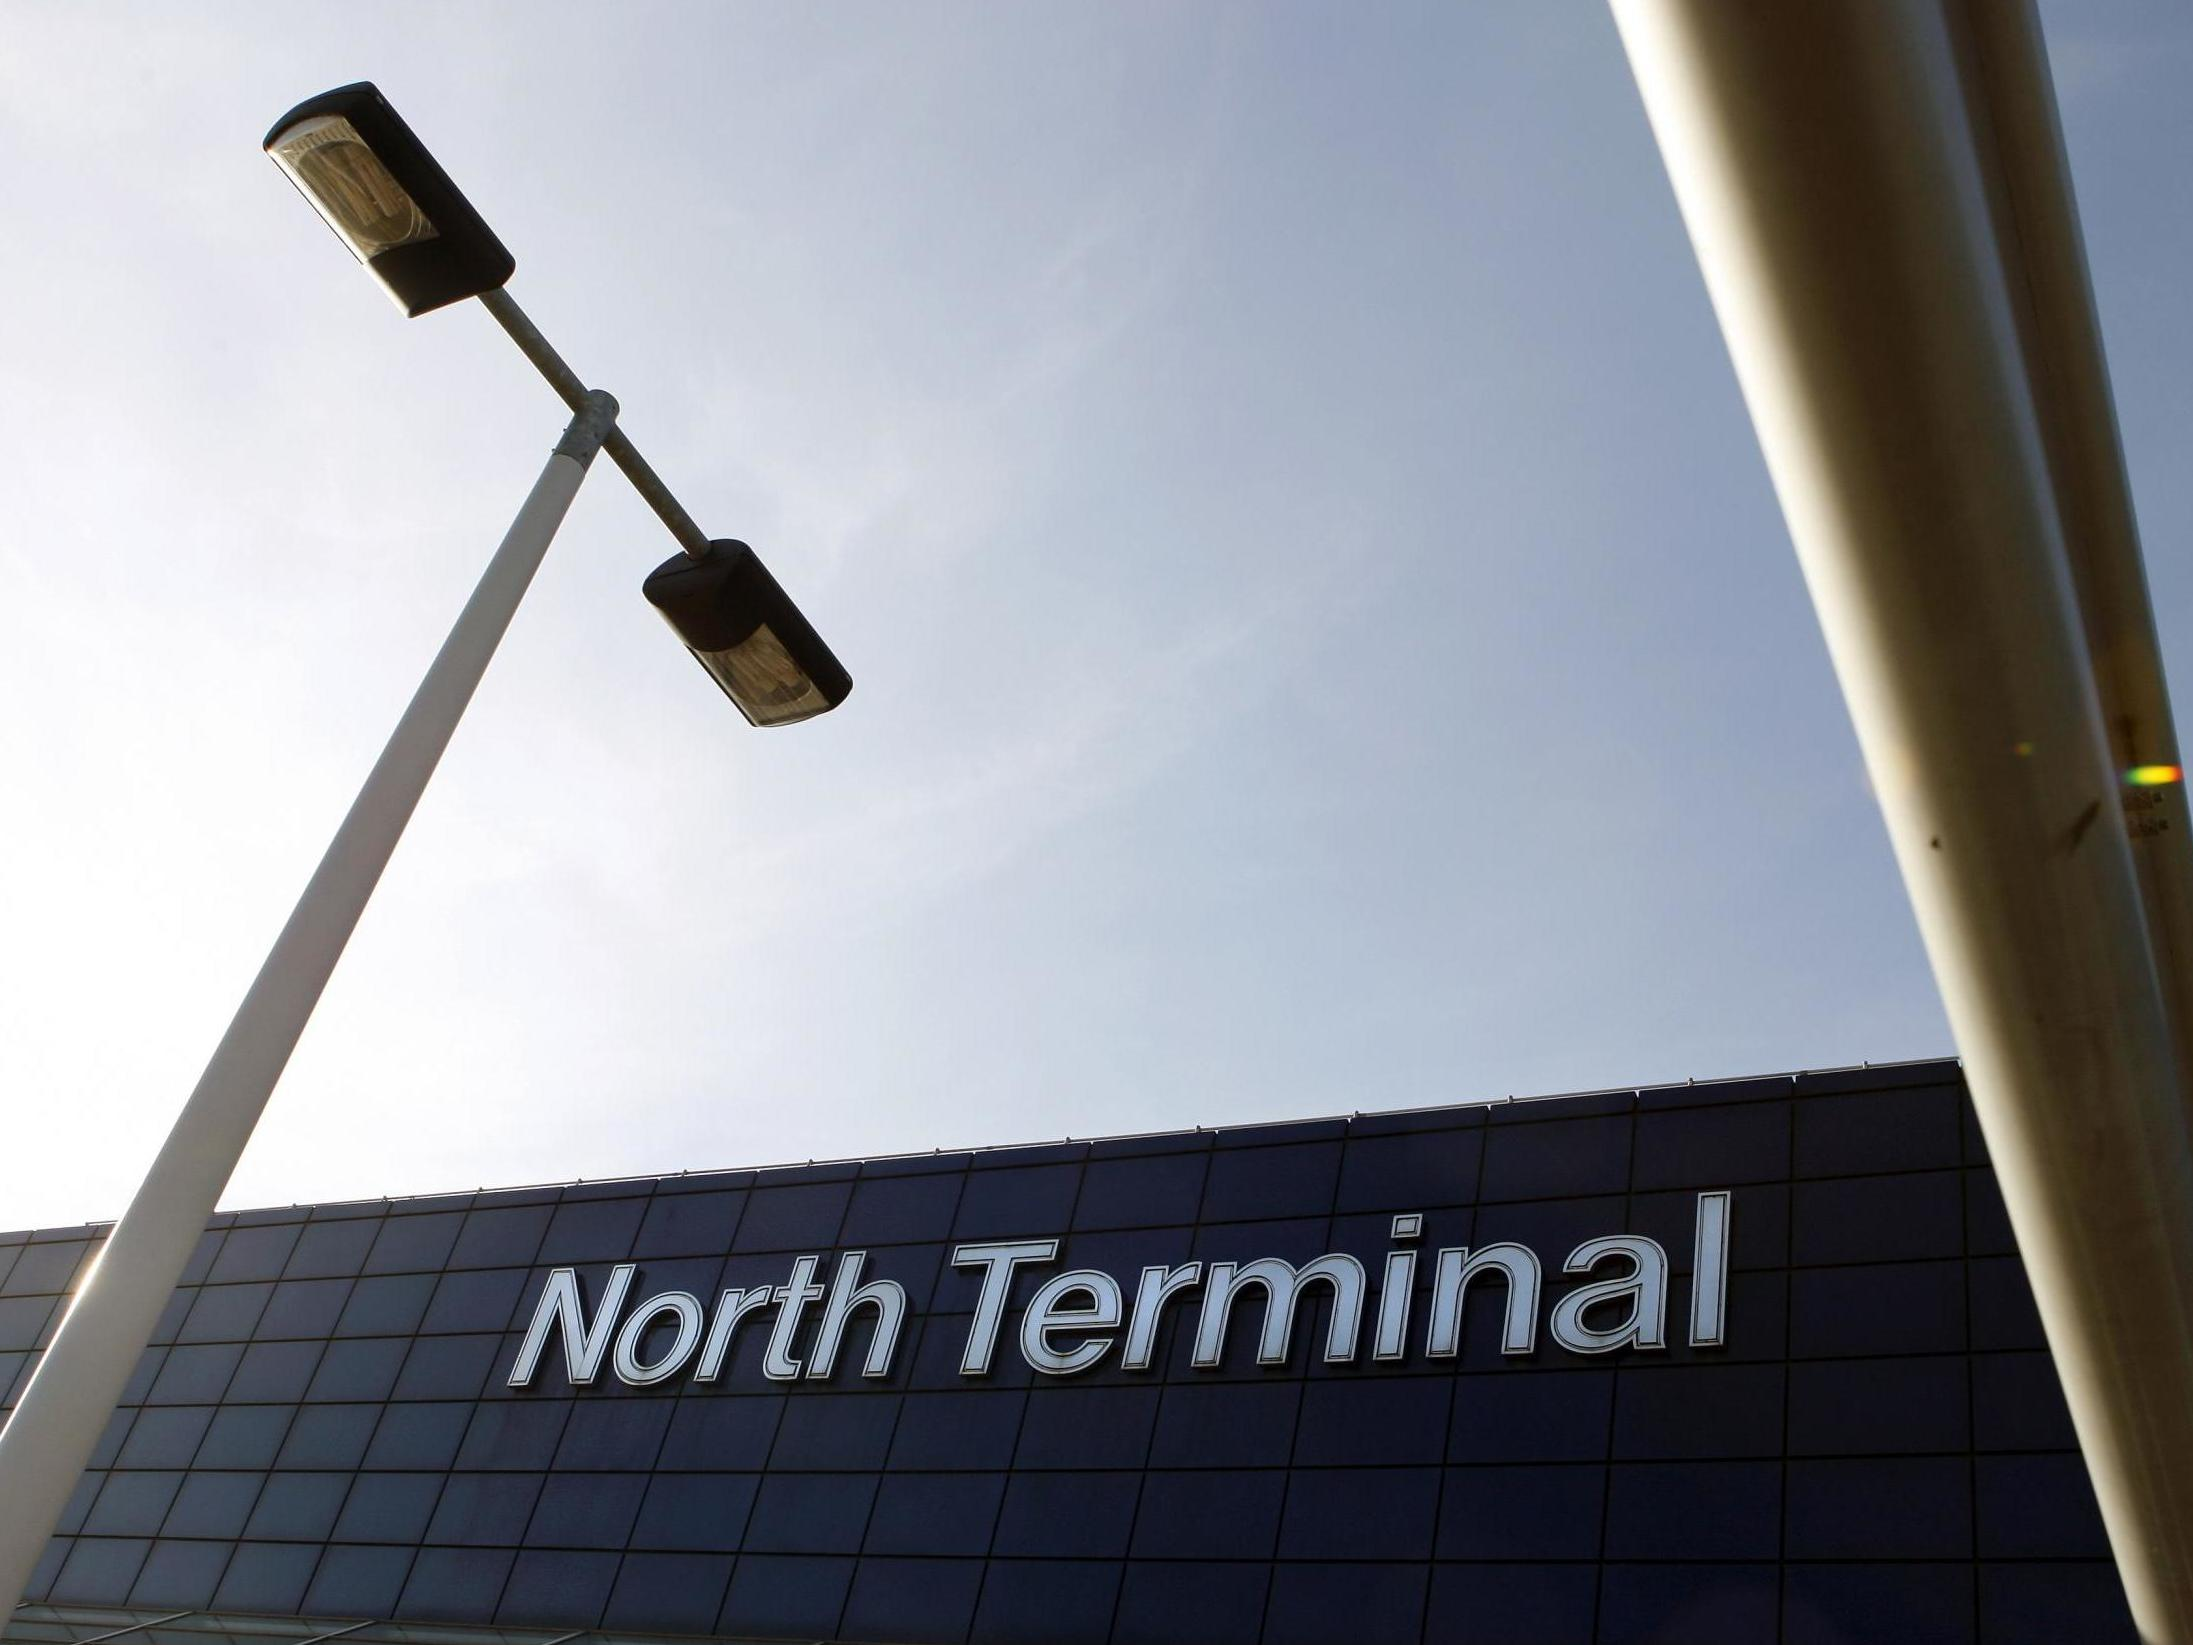 Gatwick to re-open North Terminal and double opening hours